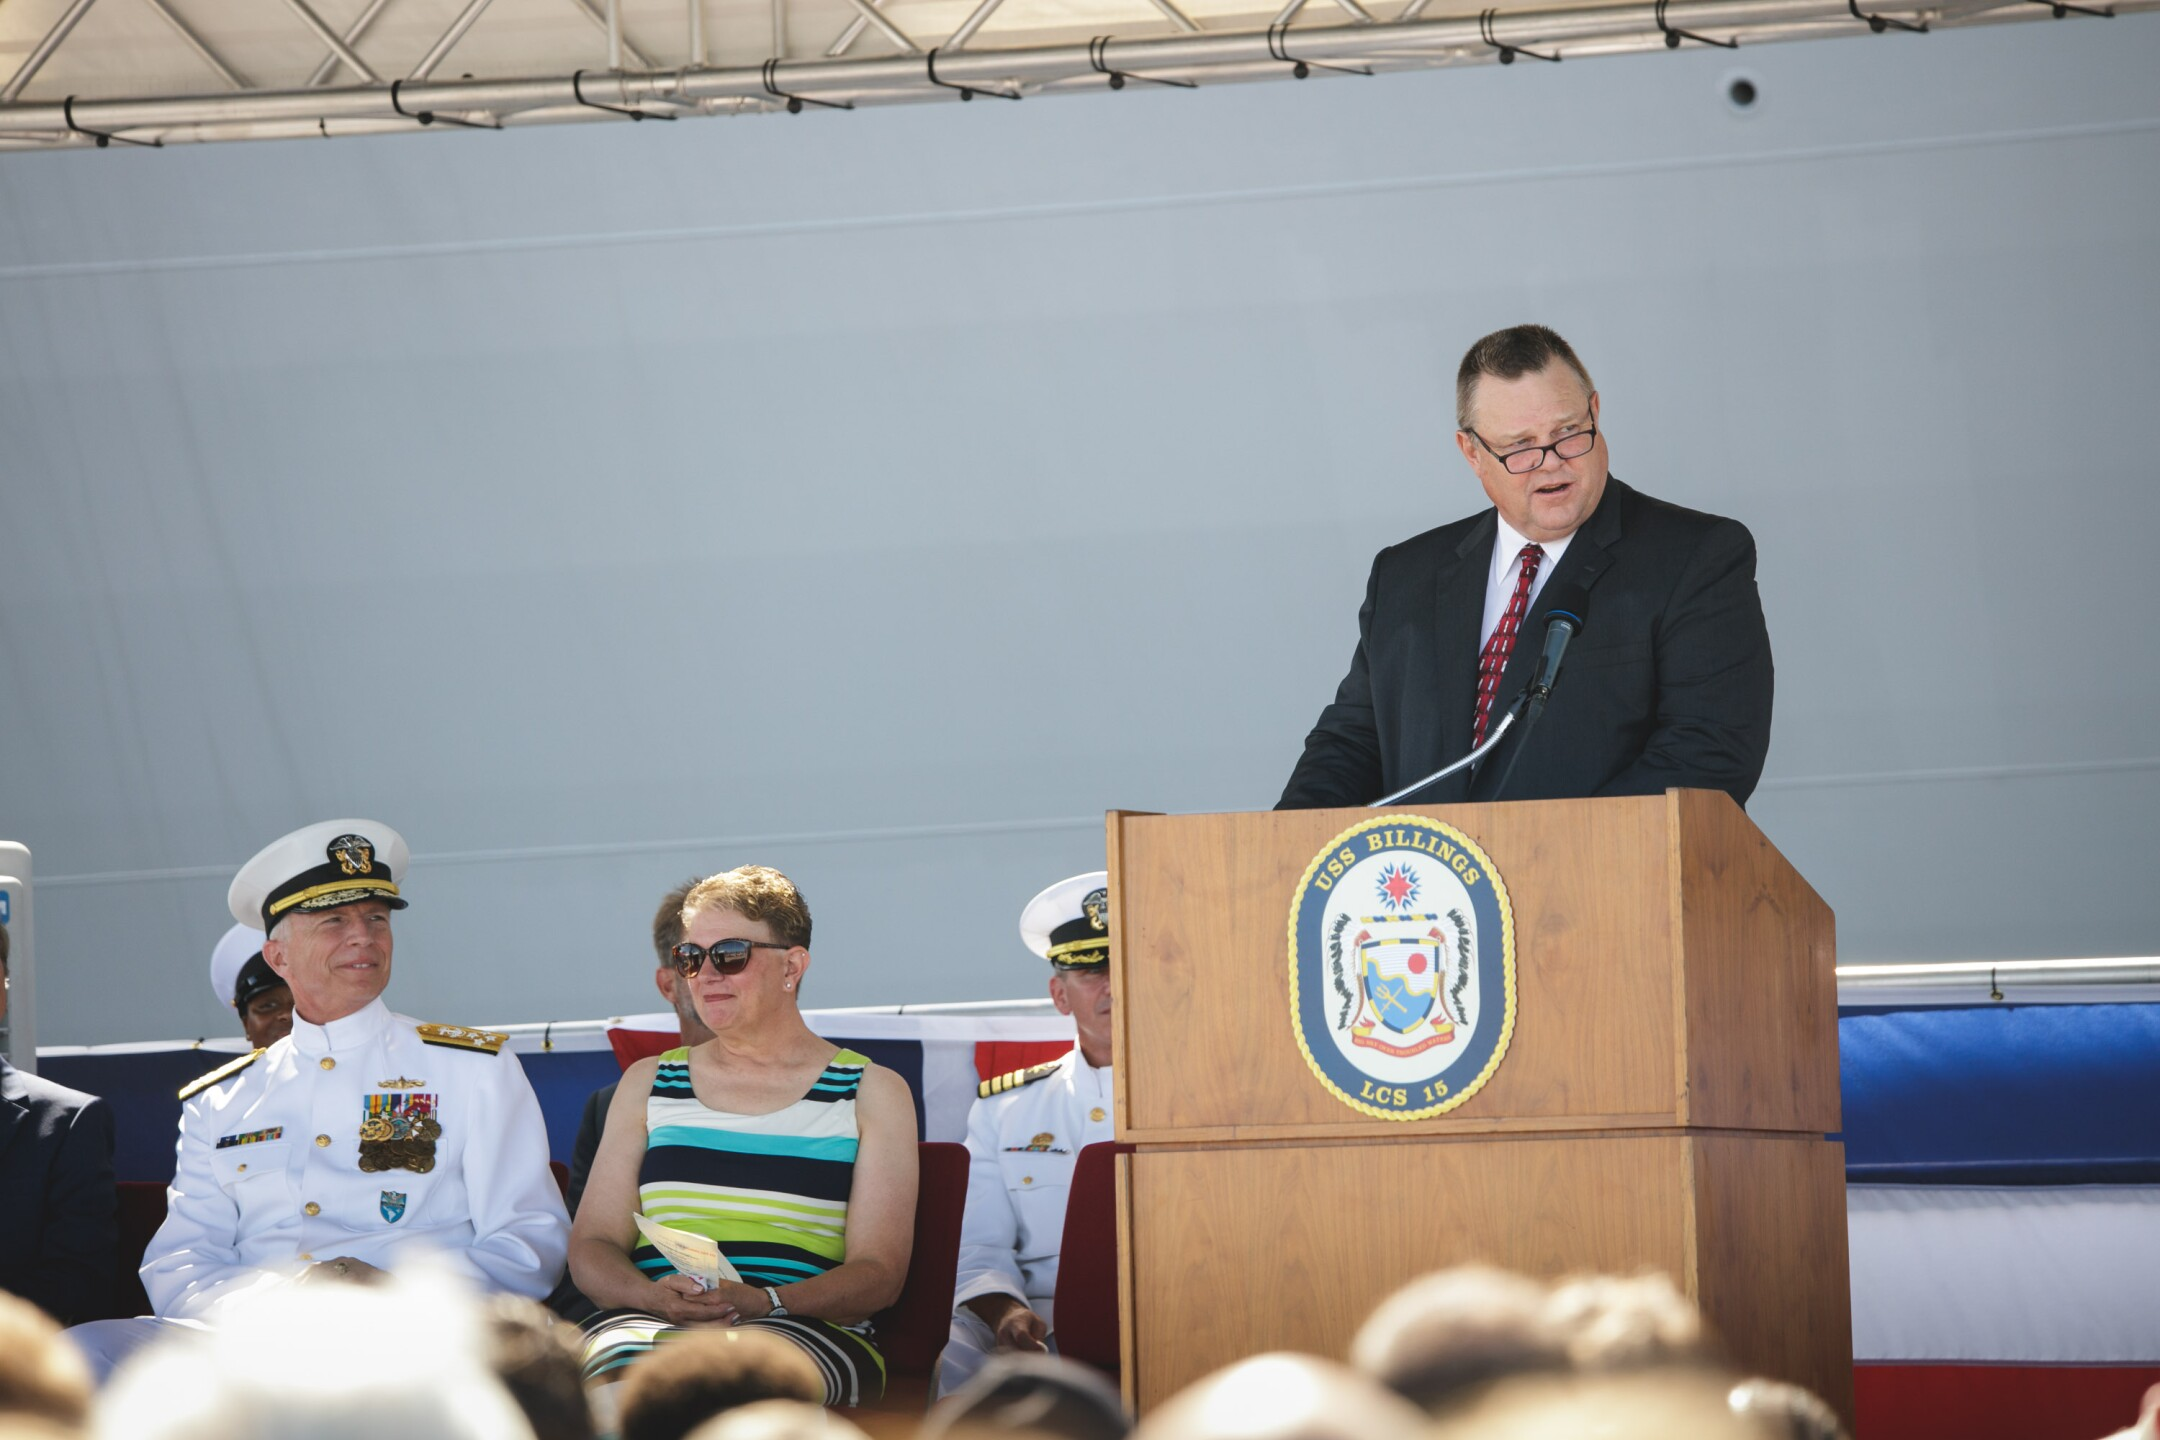 USS Billings Commissioning Ceremony in Key West Florida